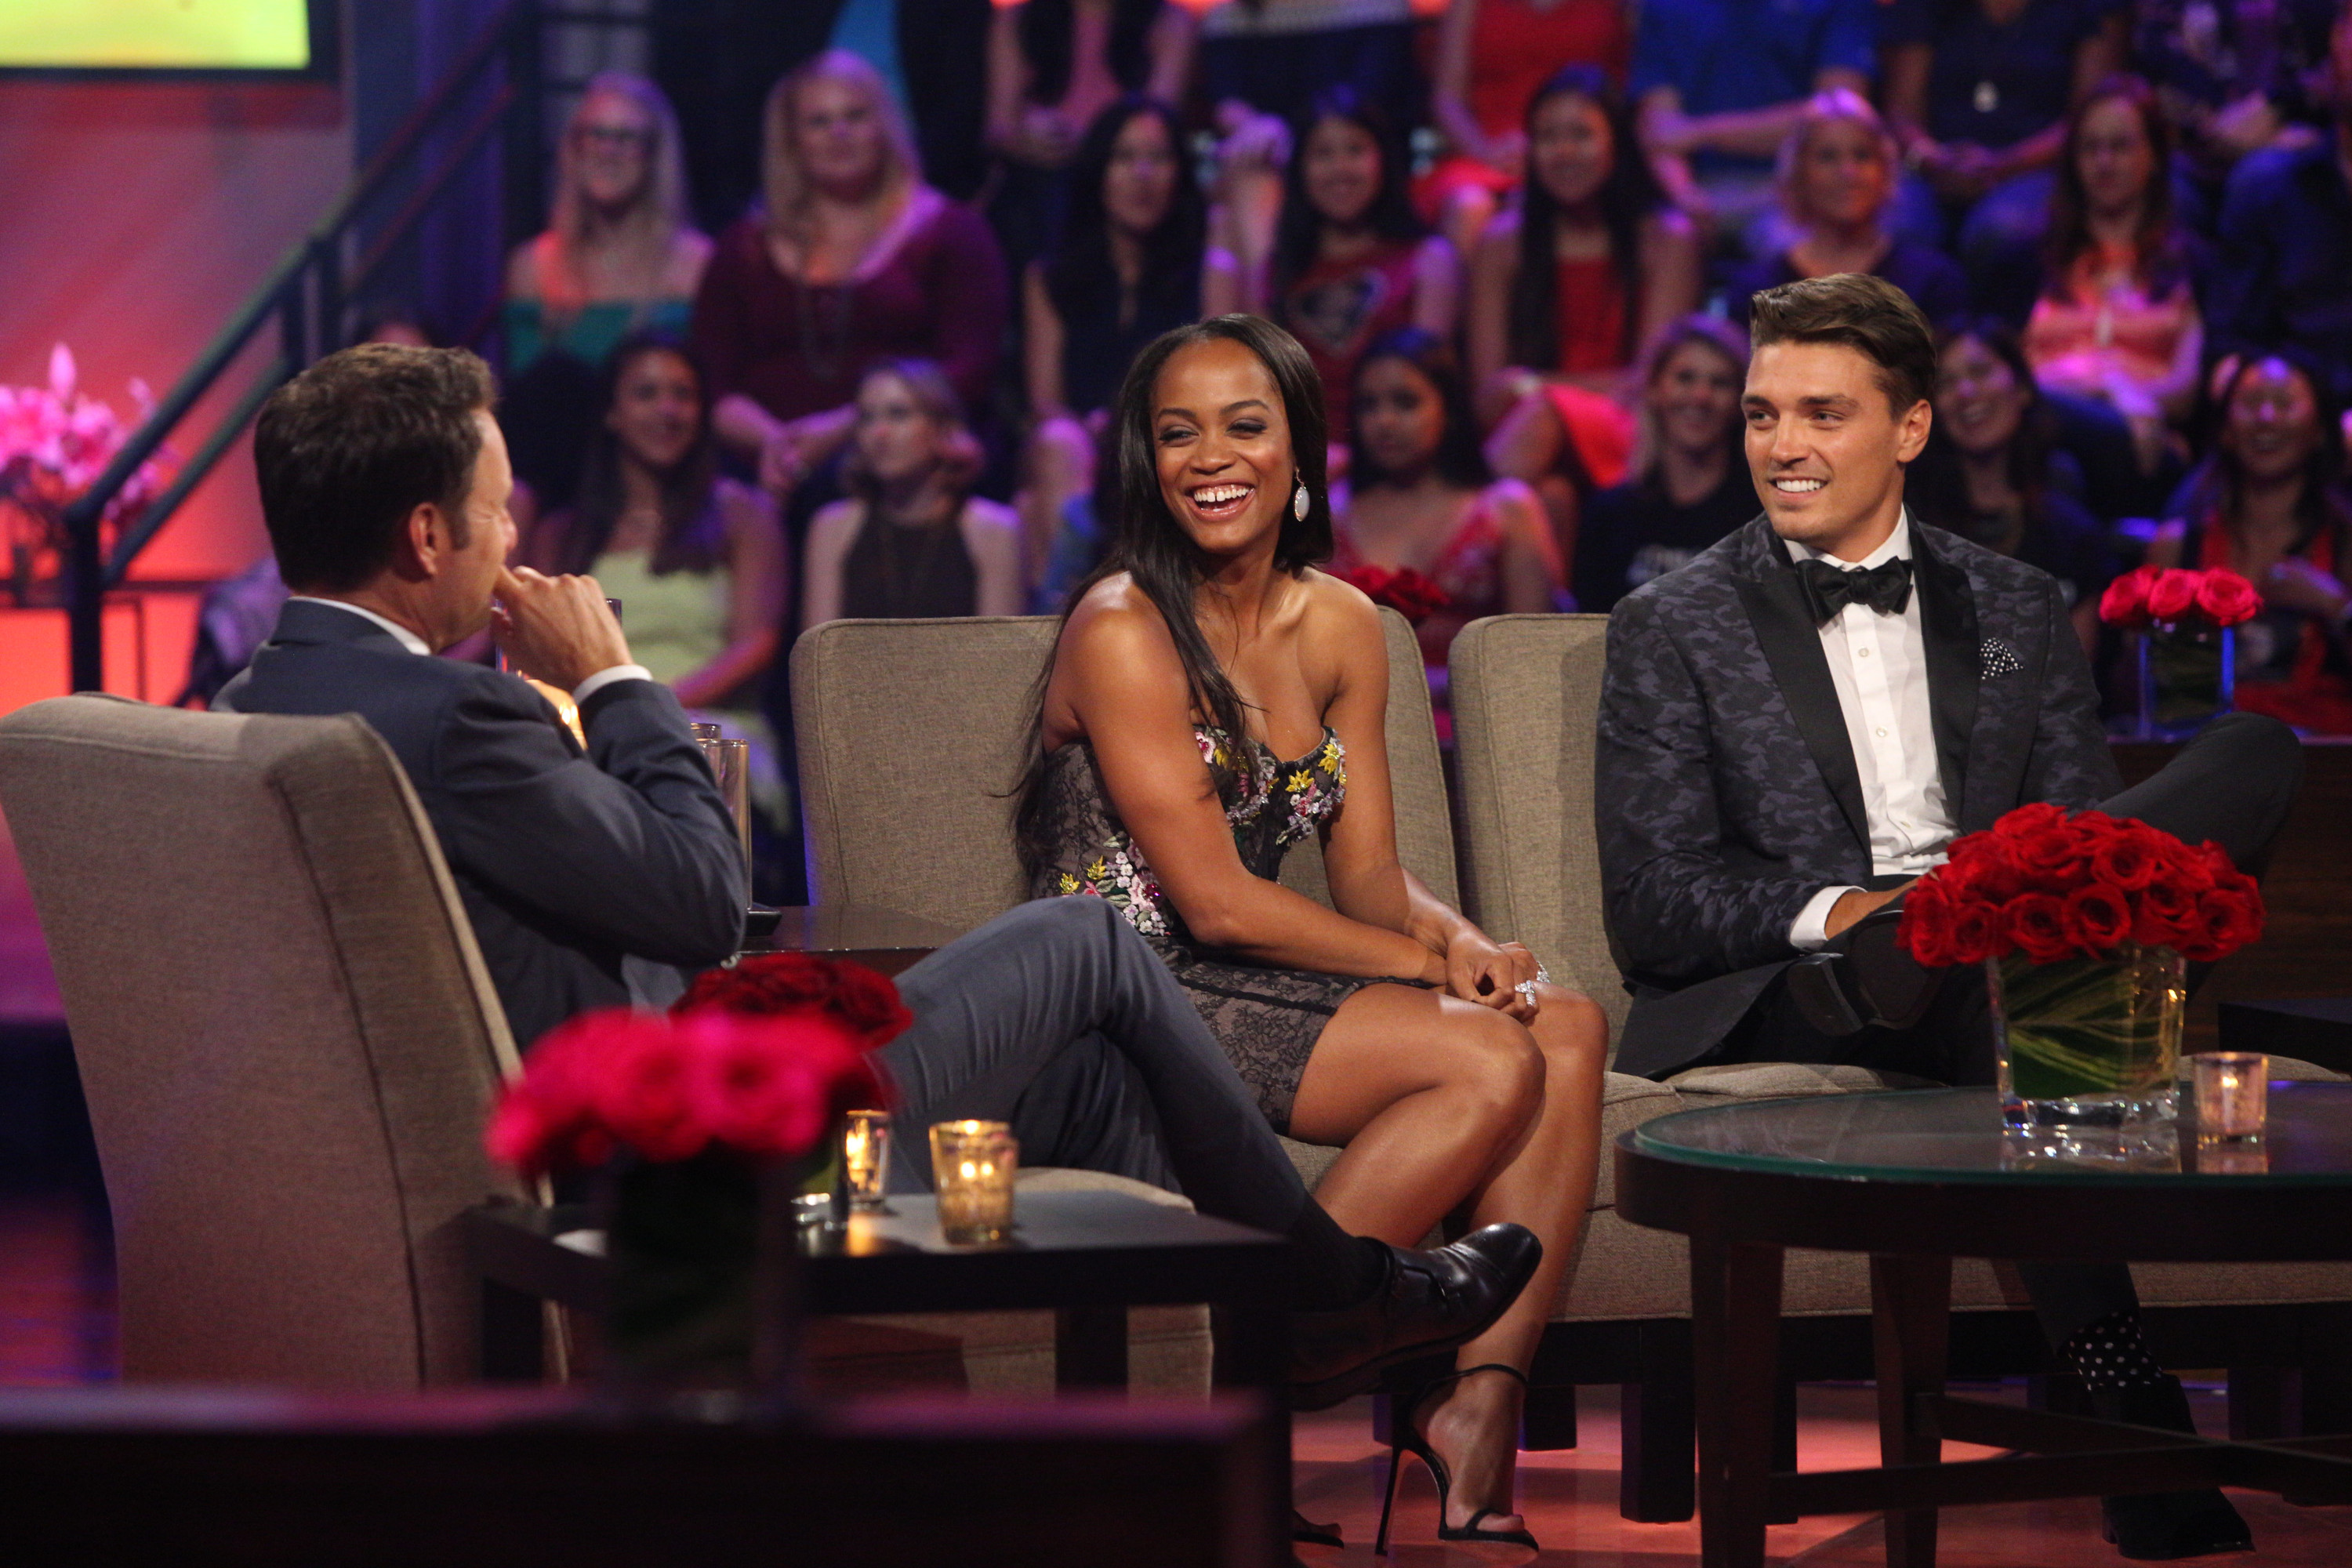 Rachel Lindsay and Lee Garrett join Chris Harrison onstage at The Bachelorette: Men Tell All (ABC/Paul Hebert)